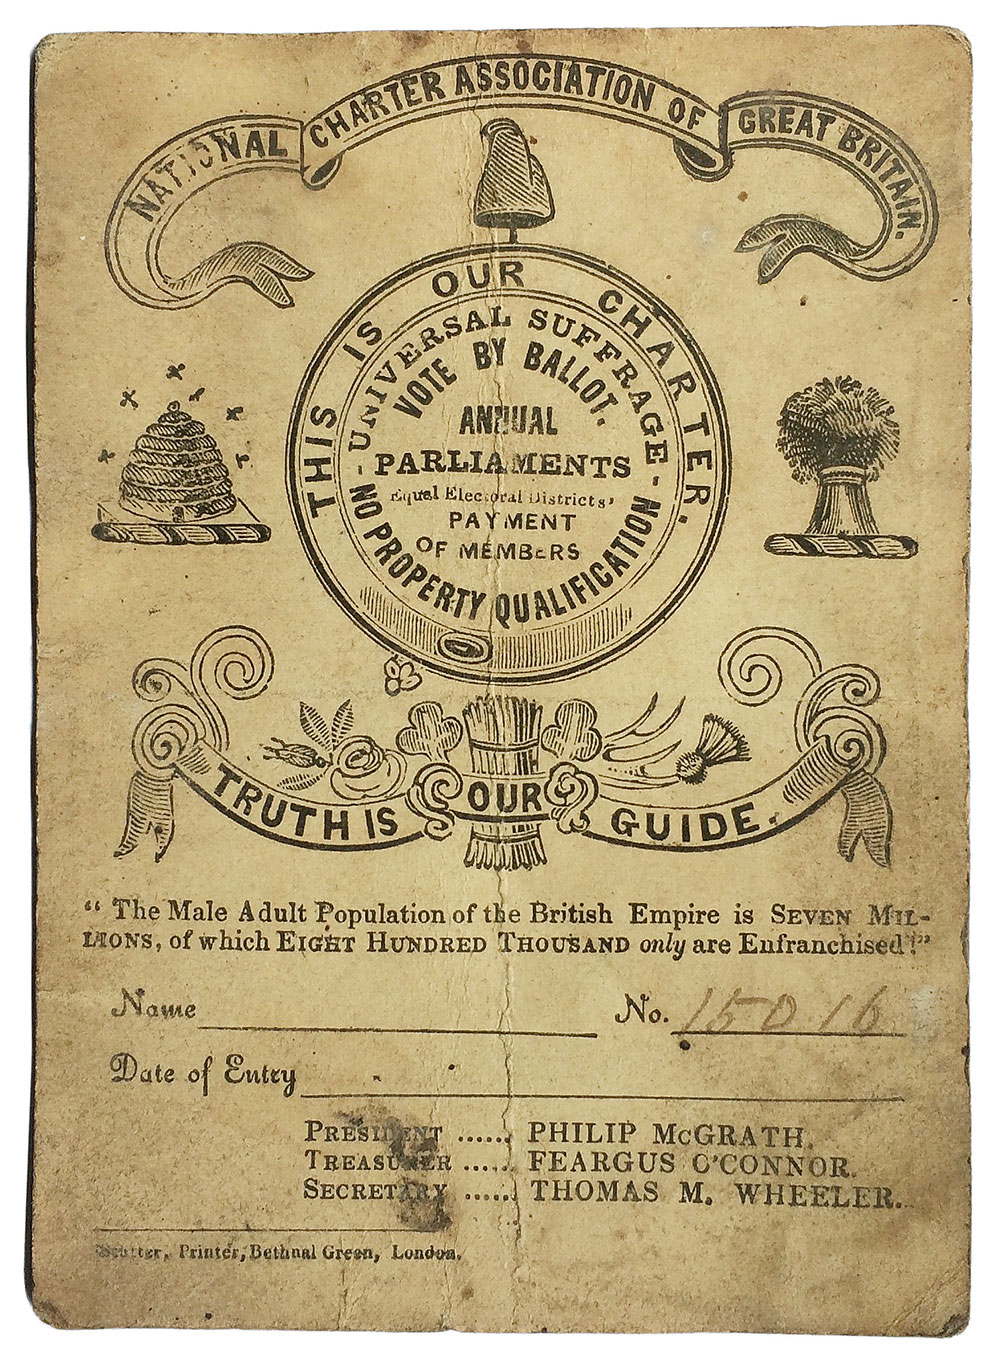 Image of a membership card that includes symbols of a cap of liberty; a bee hive, a bushel of corn, decoration denoting different parts of the country, and an Irish shamrock and Scottish thistle.